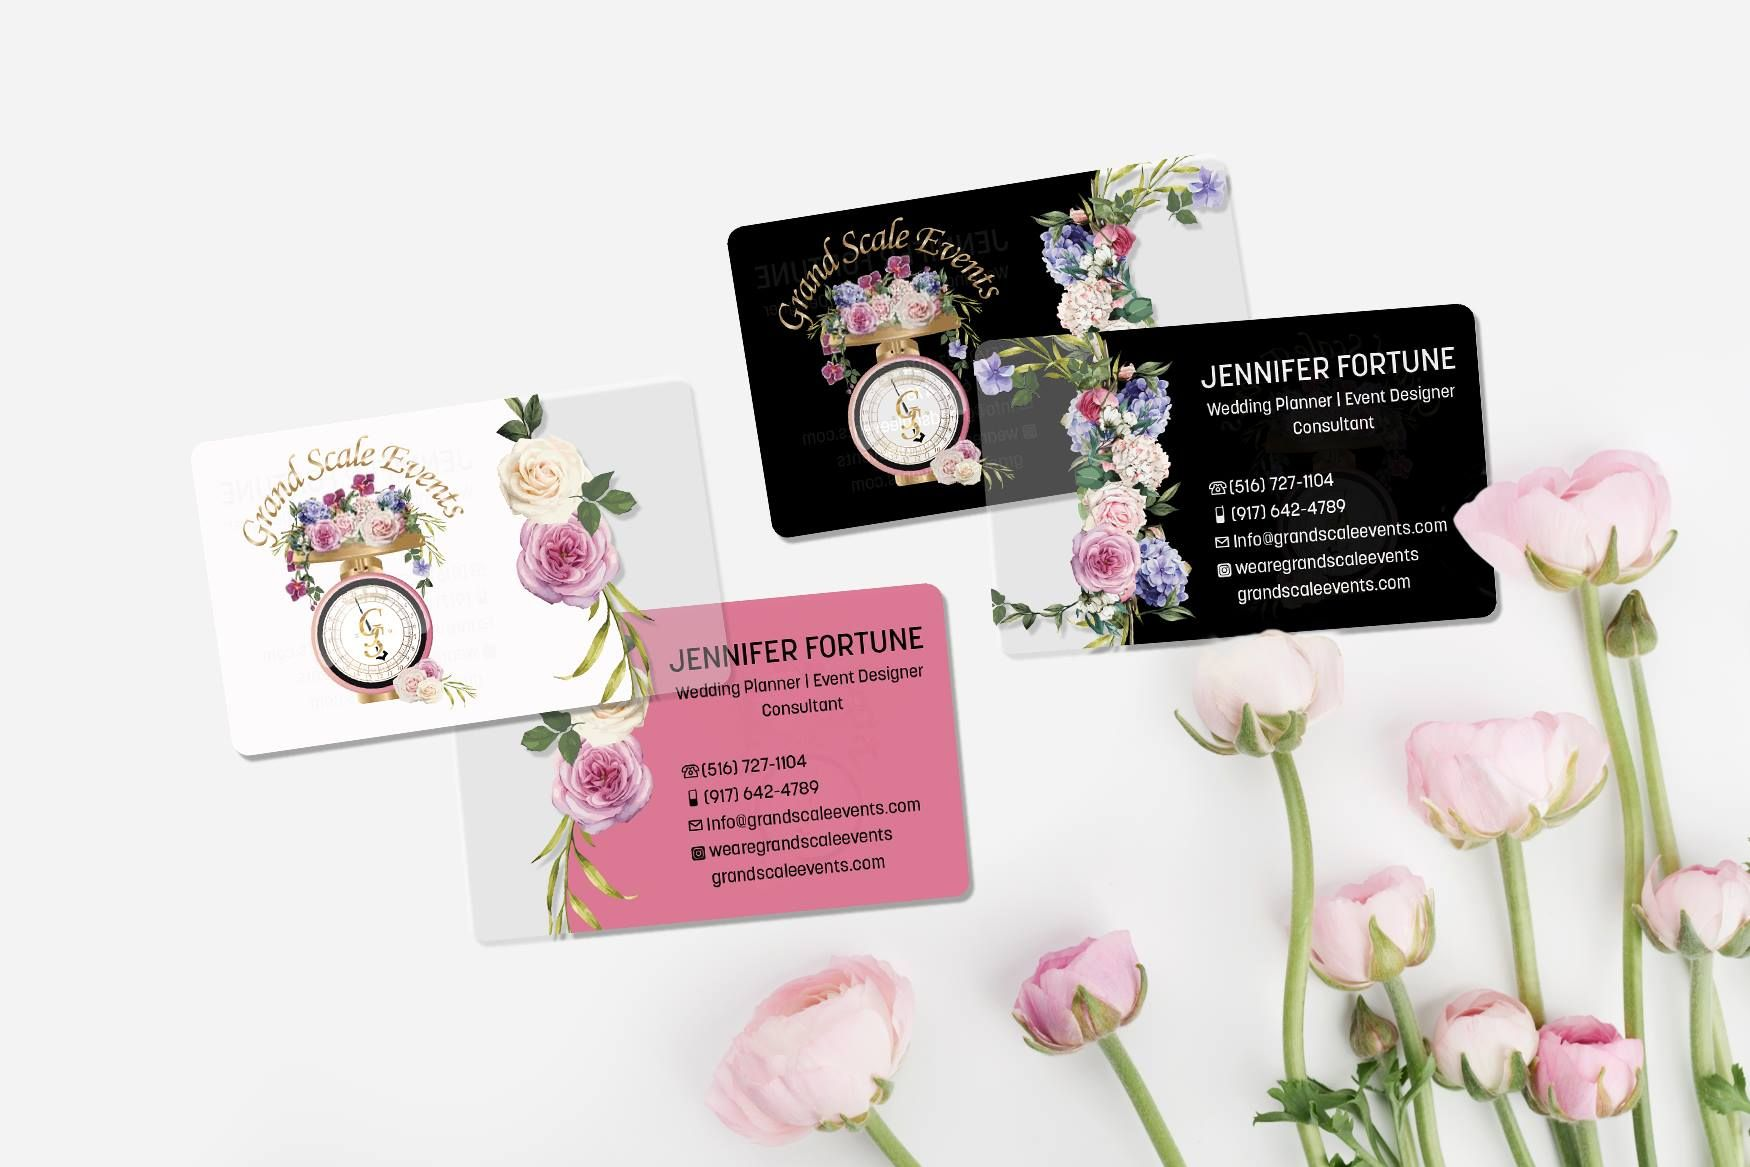 Transparent Business For A Wedding Consultant Clear Business Cards Transparent Business Cards Plastic Business Cards